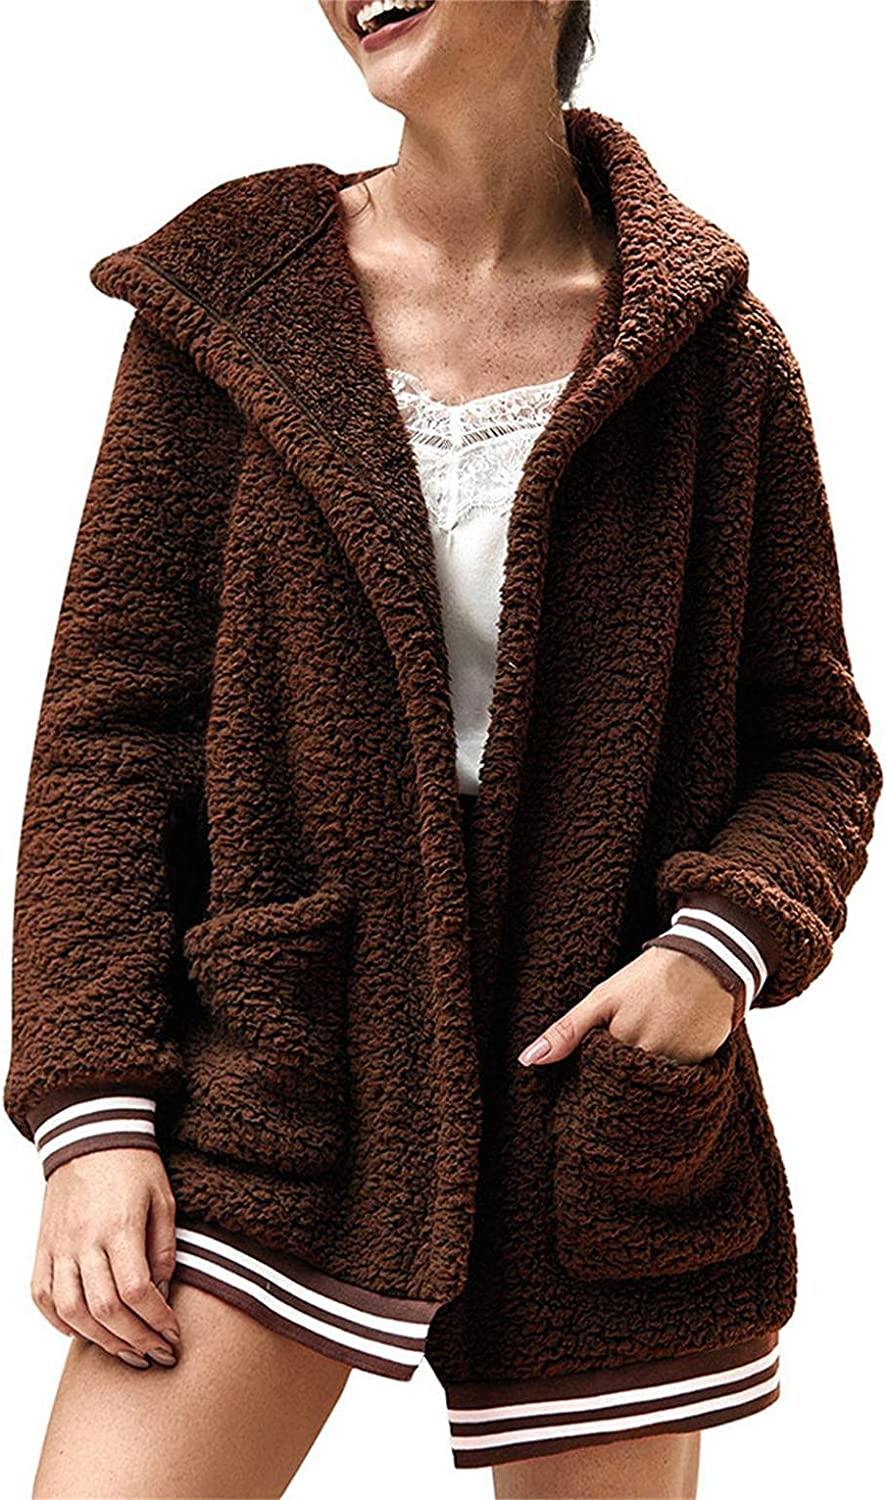 PHSHY Fleece Fuzzy Hoodies for Directly managed store Overs We OFFer at cheap prices Shaggy Shearling Women Faux